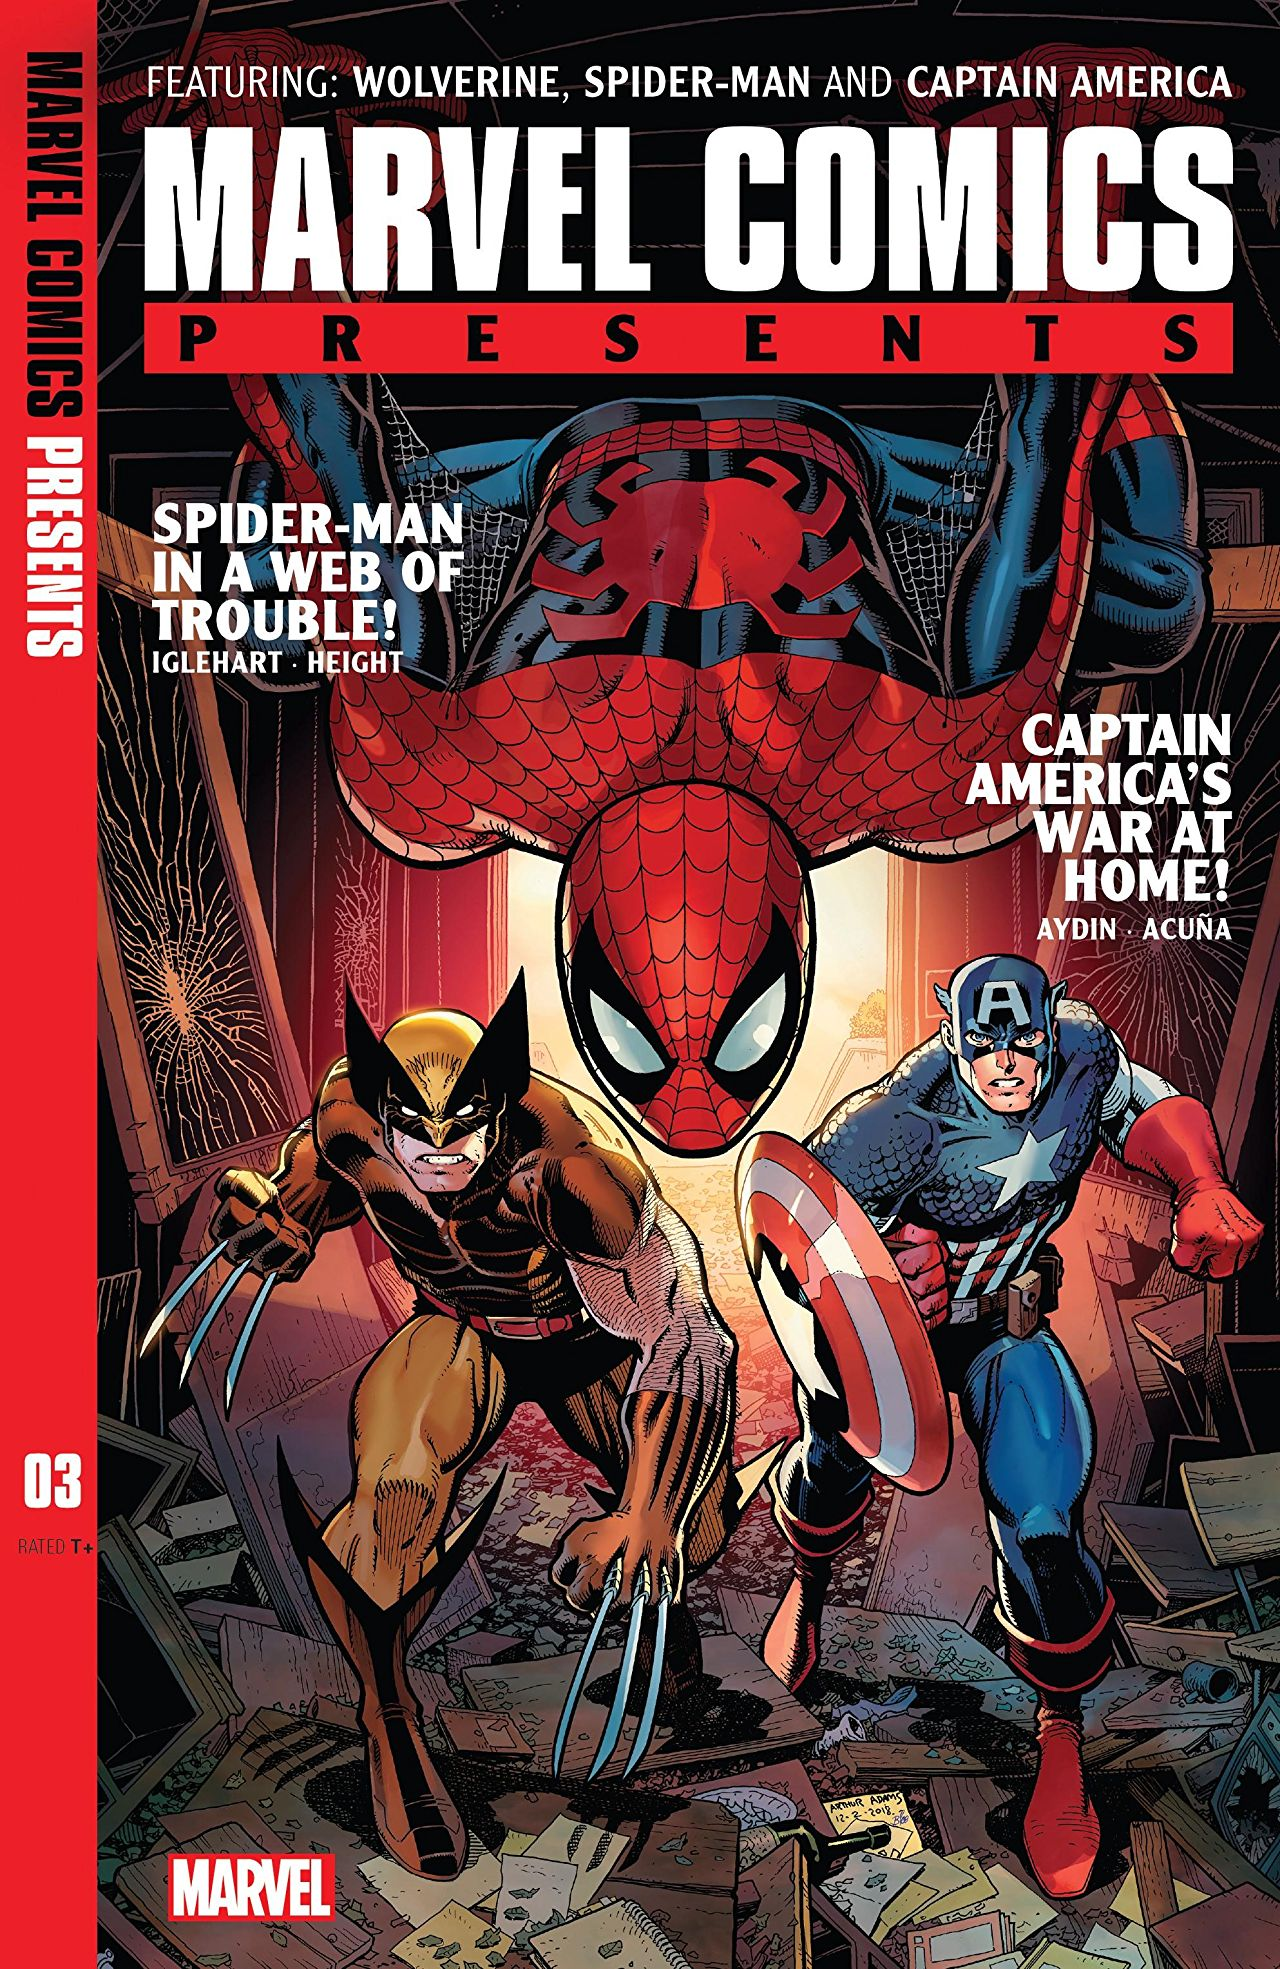 Marvel Preview: Marvel Comics Presents #3